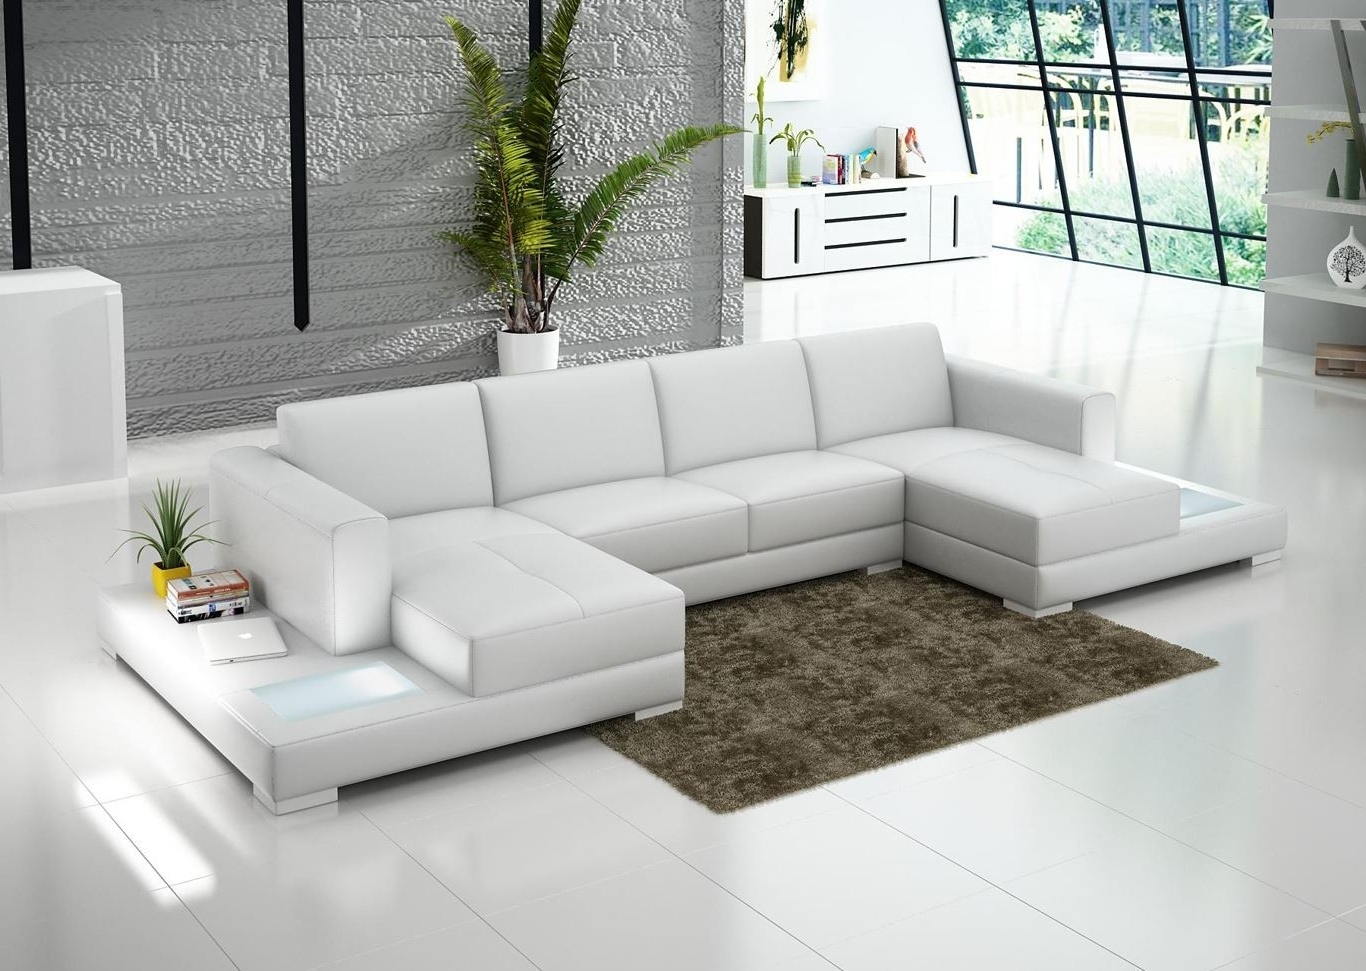 Double Chaise Sectional For Complete And Perfect Welcoming Living Pertaining To Widely Used Double Chaise Couches (View 13 of 15)